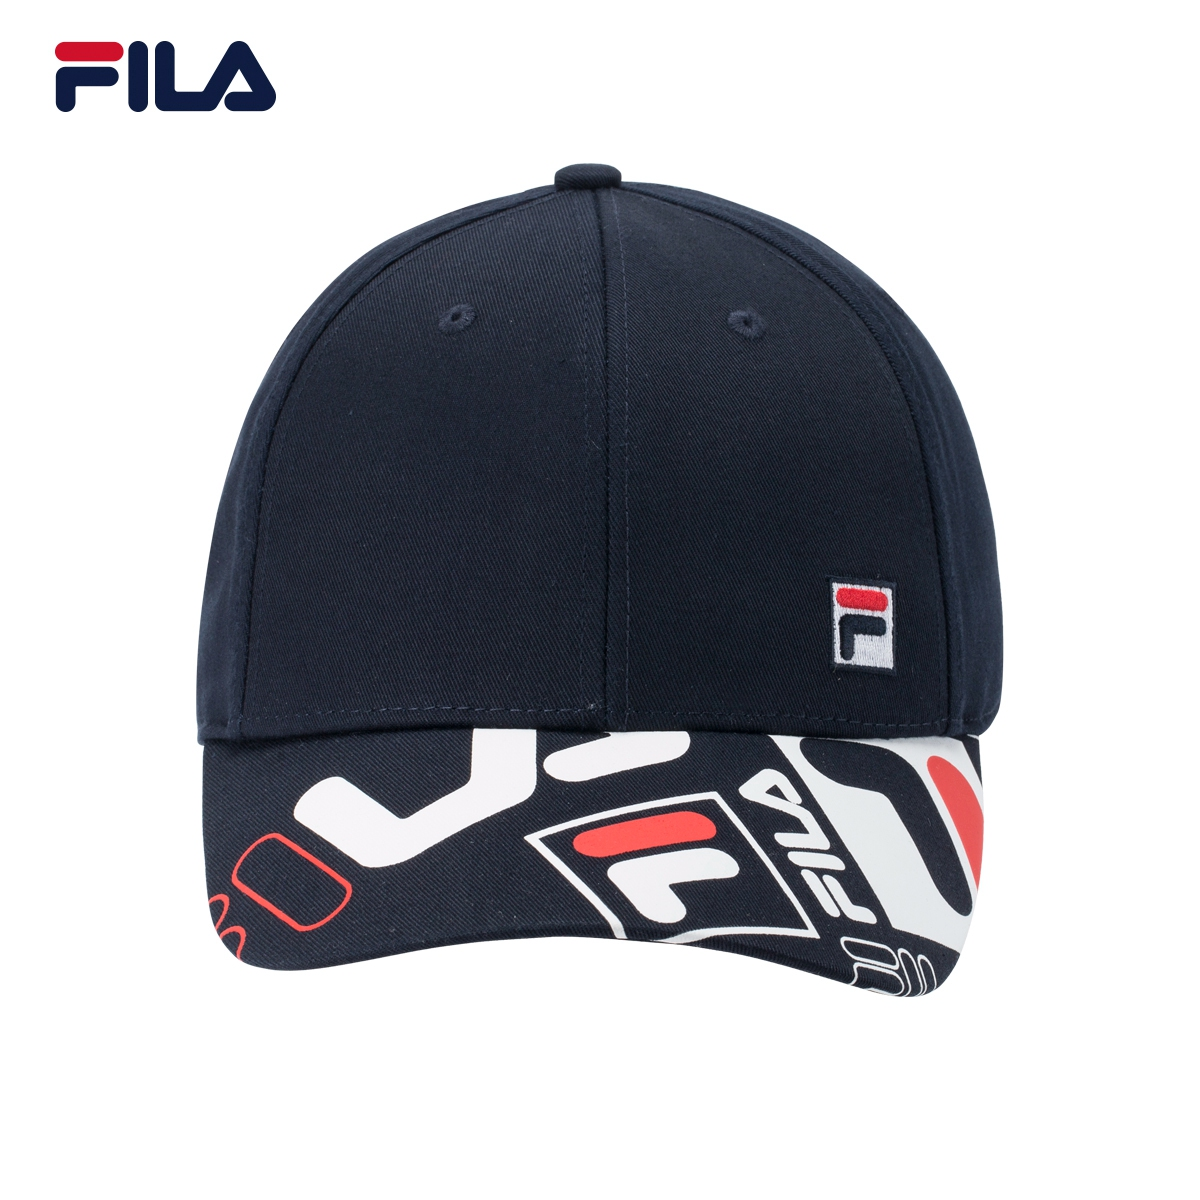 3e87d68f579 ... baseball cap  Share. FILA Fei Le Male Hat 2018 official authentic sports  and leisure printing wild duck tongue baseball